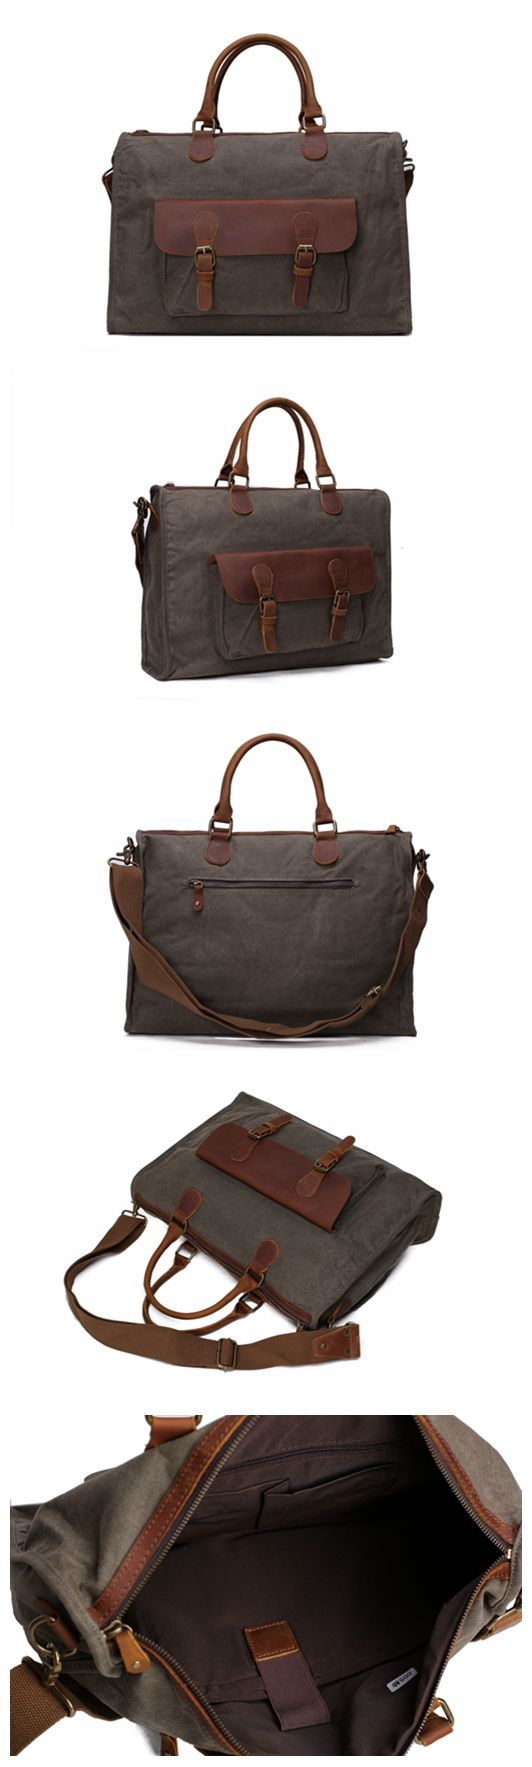 Waxed Canvas and Leather Messenger Bags, Laptop Briefcases, Shoulder Bags